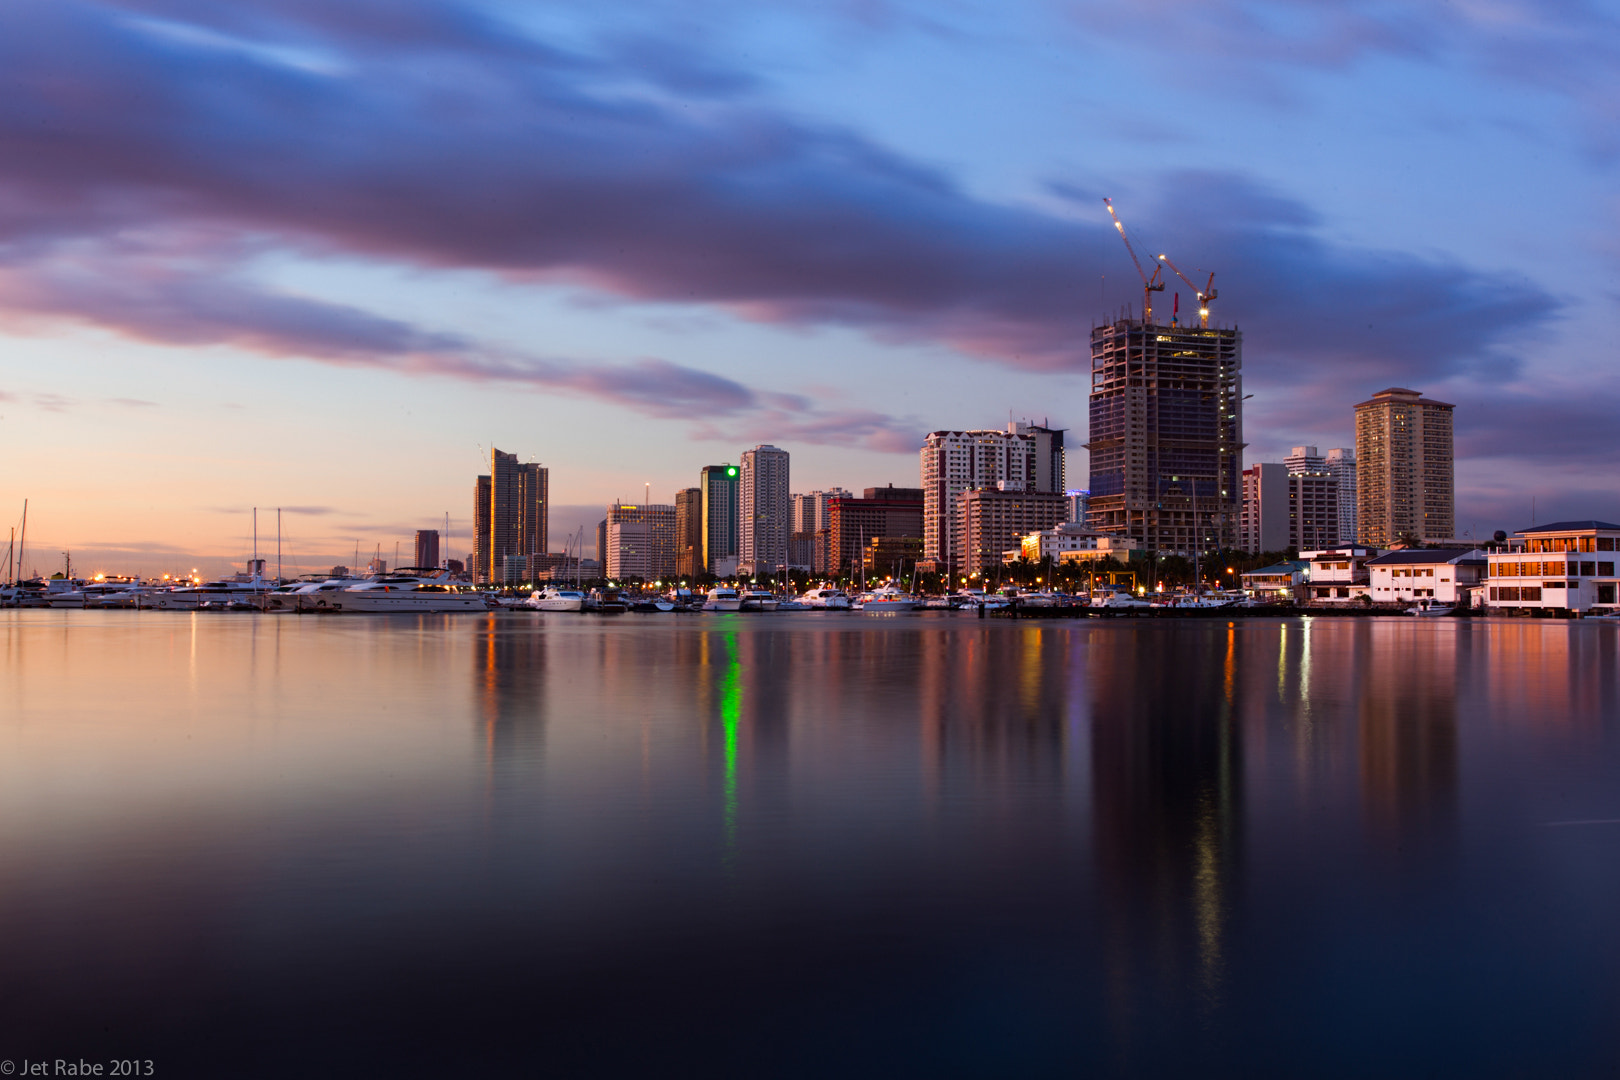 Photograph Sunset at Manila Bay by Jet Rabe on 500px